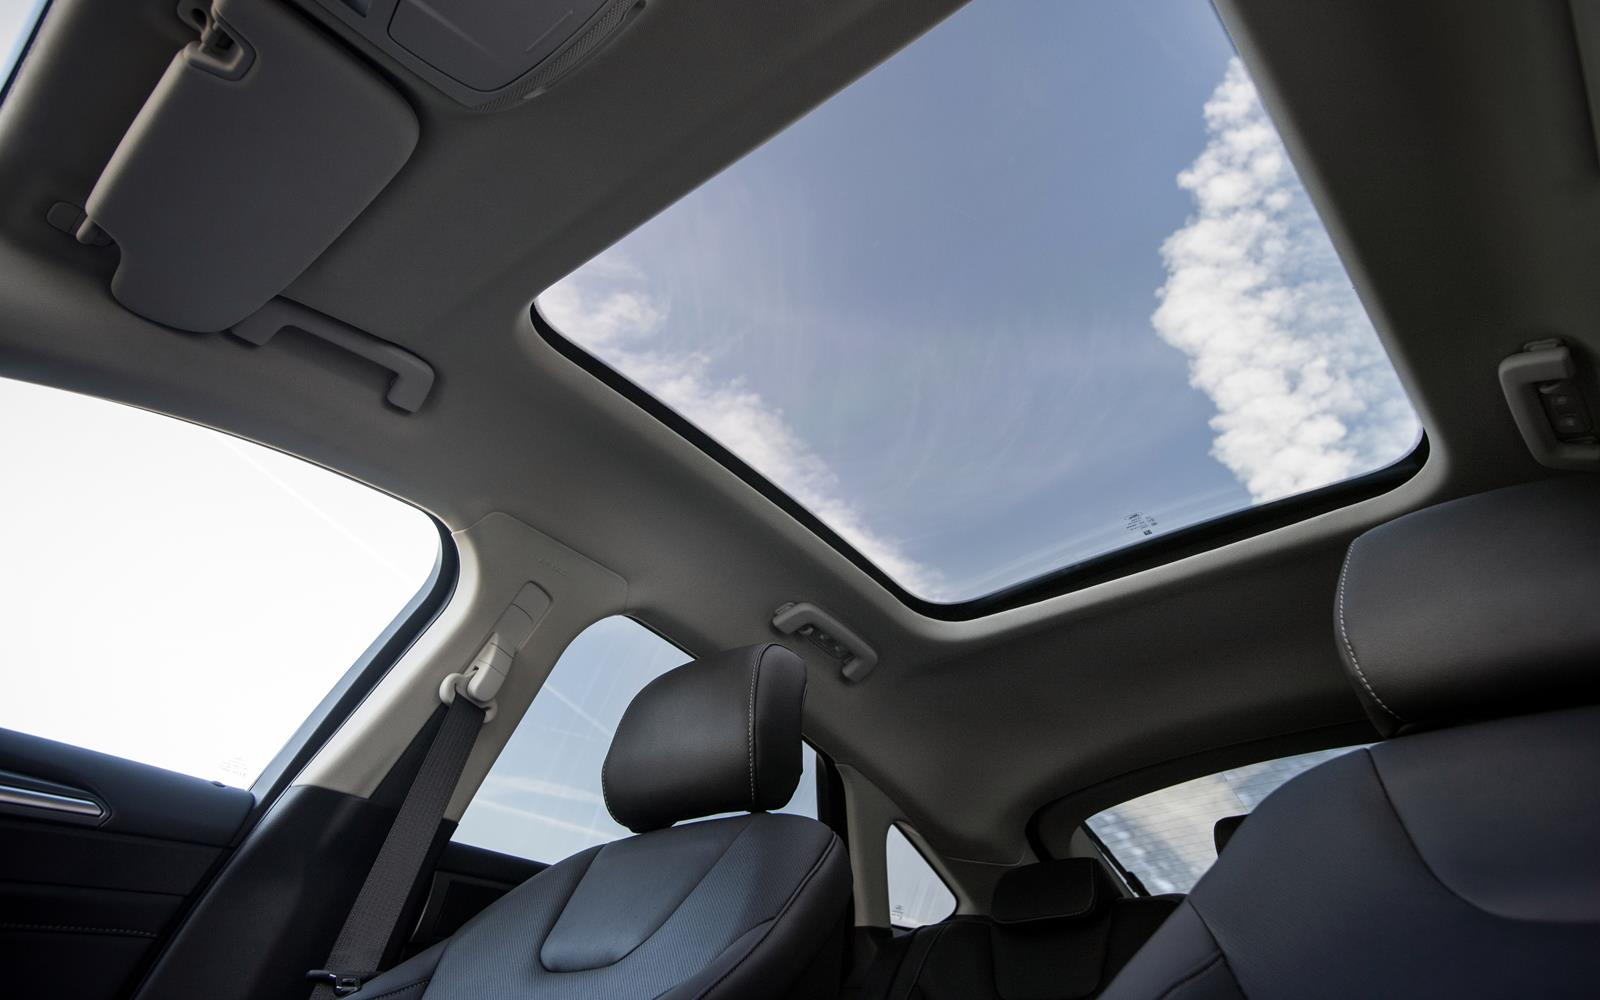 ford mondeo 2015 sunroof interior front seat driver. Black Bedroom Furniture Sets. Home Design Ideas